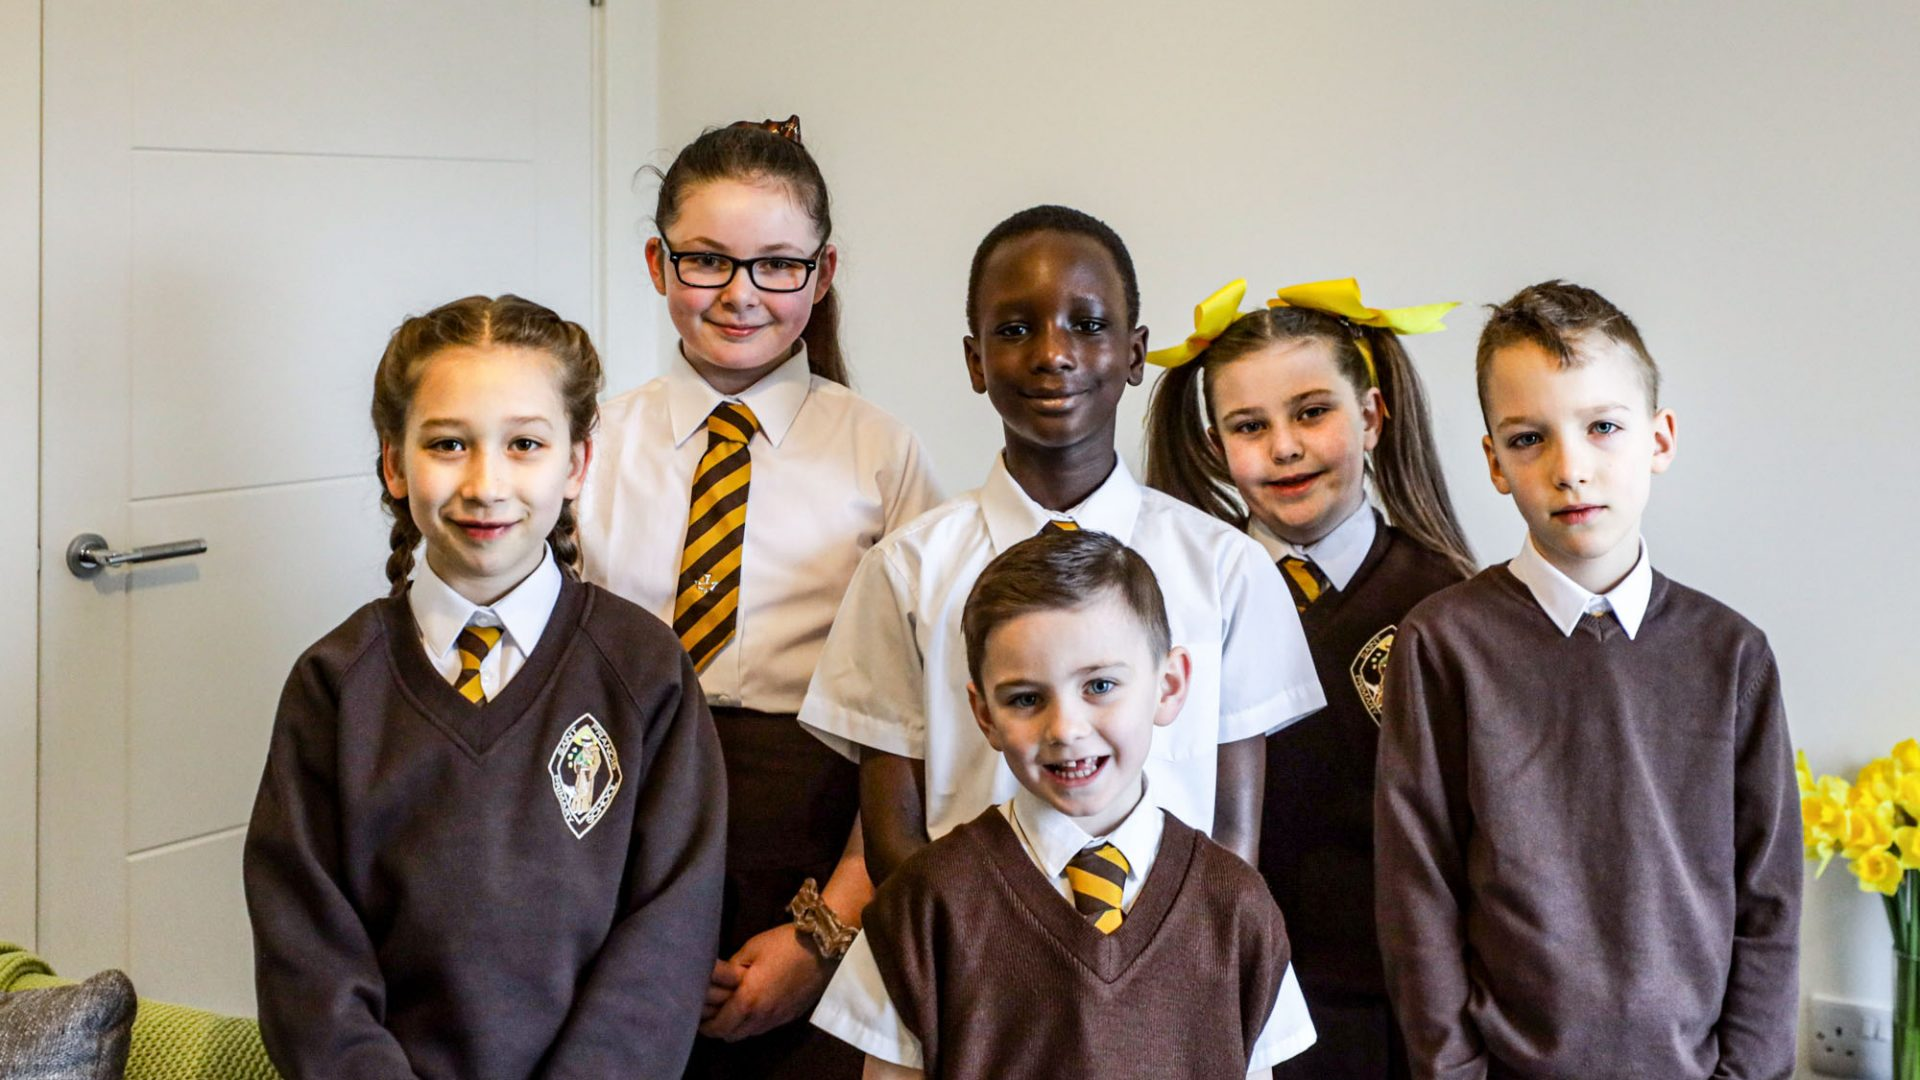 Over 450 pupils from St Francis Primary School visit Laurieston Living